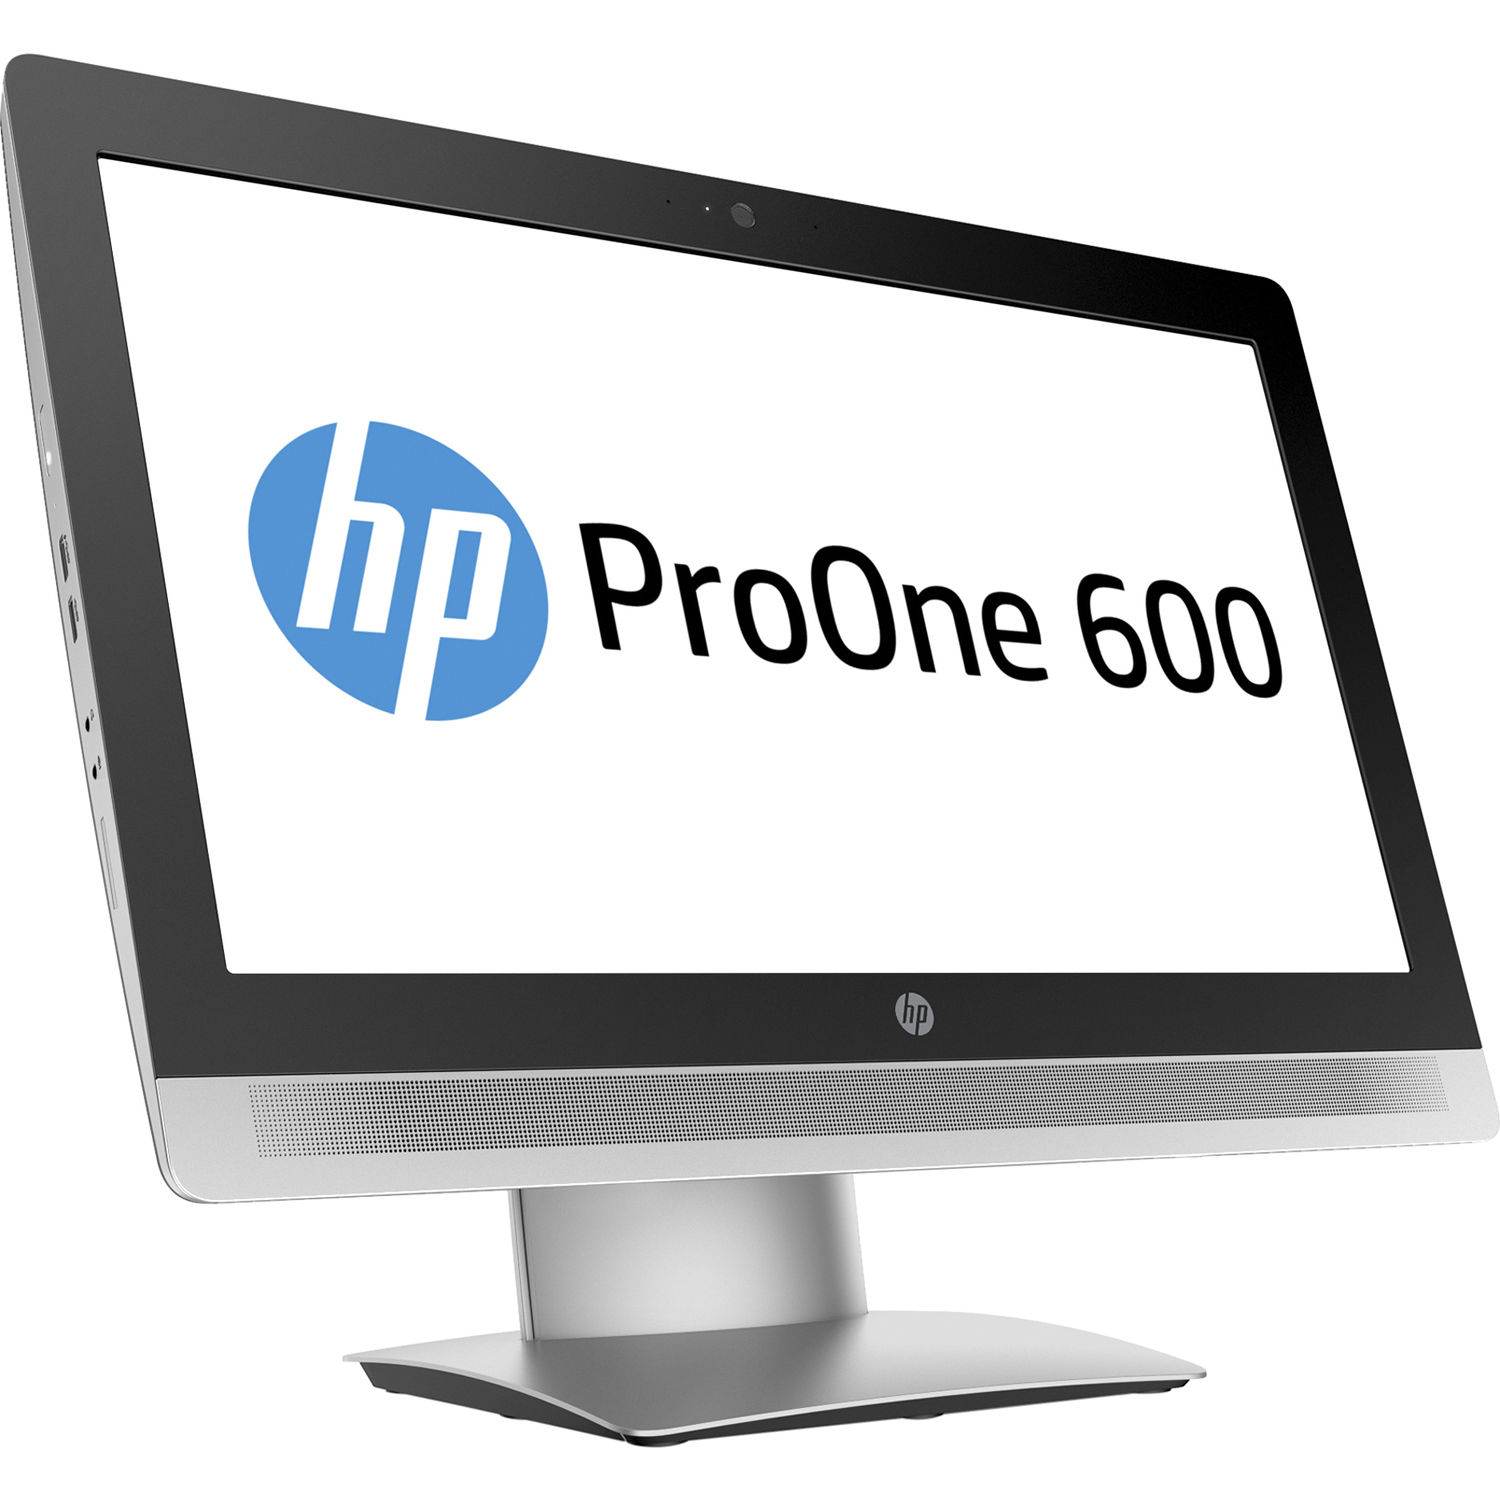 hp pro one 600 g2 service manual